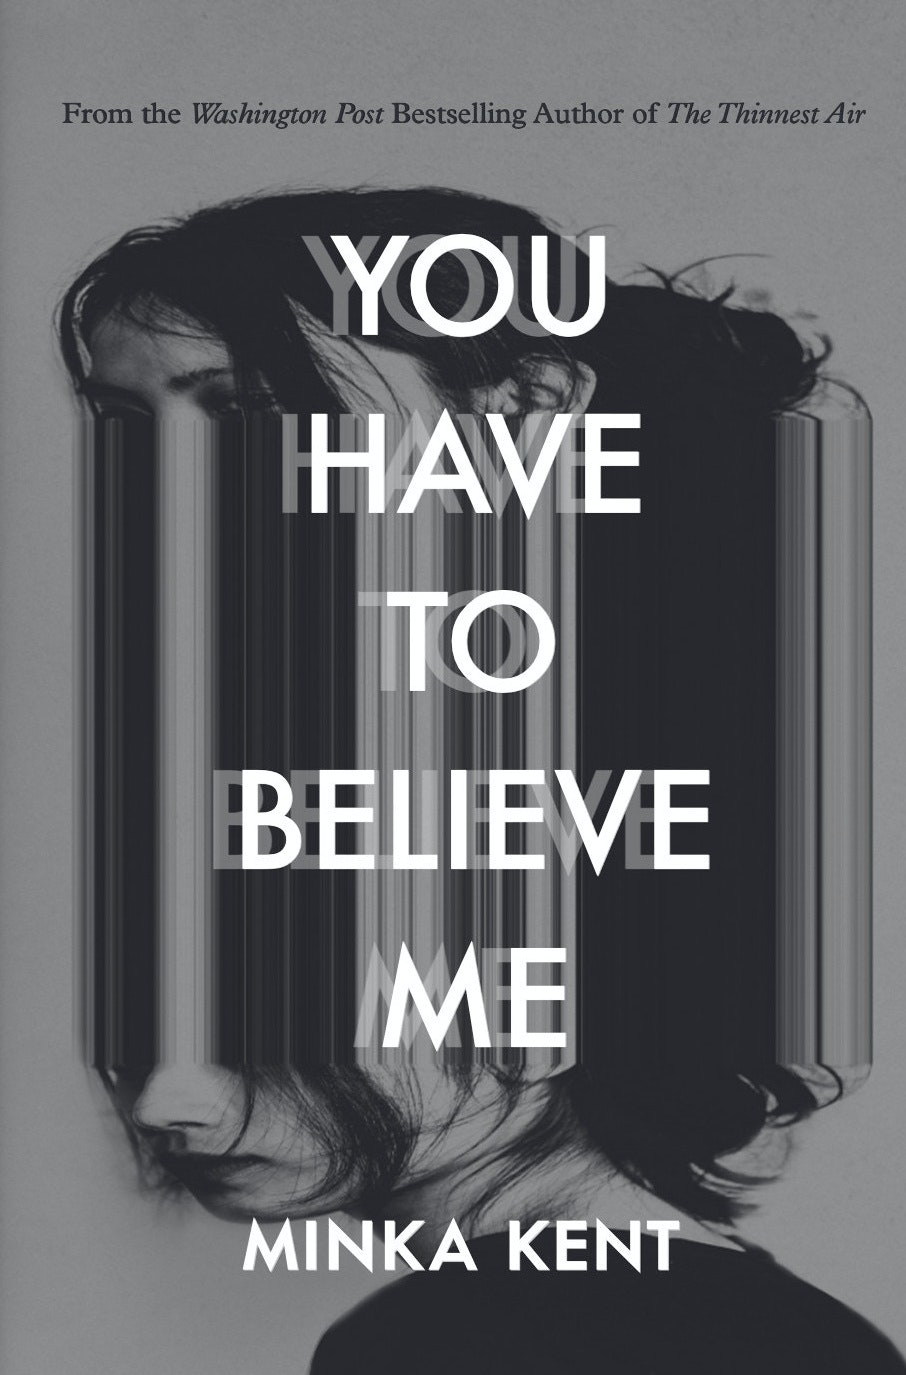 You have to believe me book cover